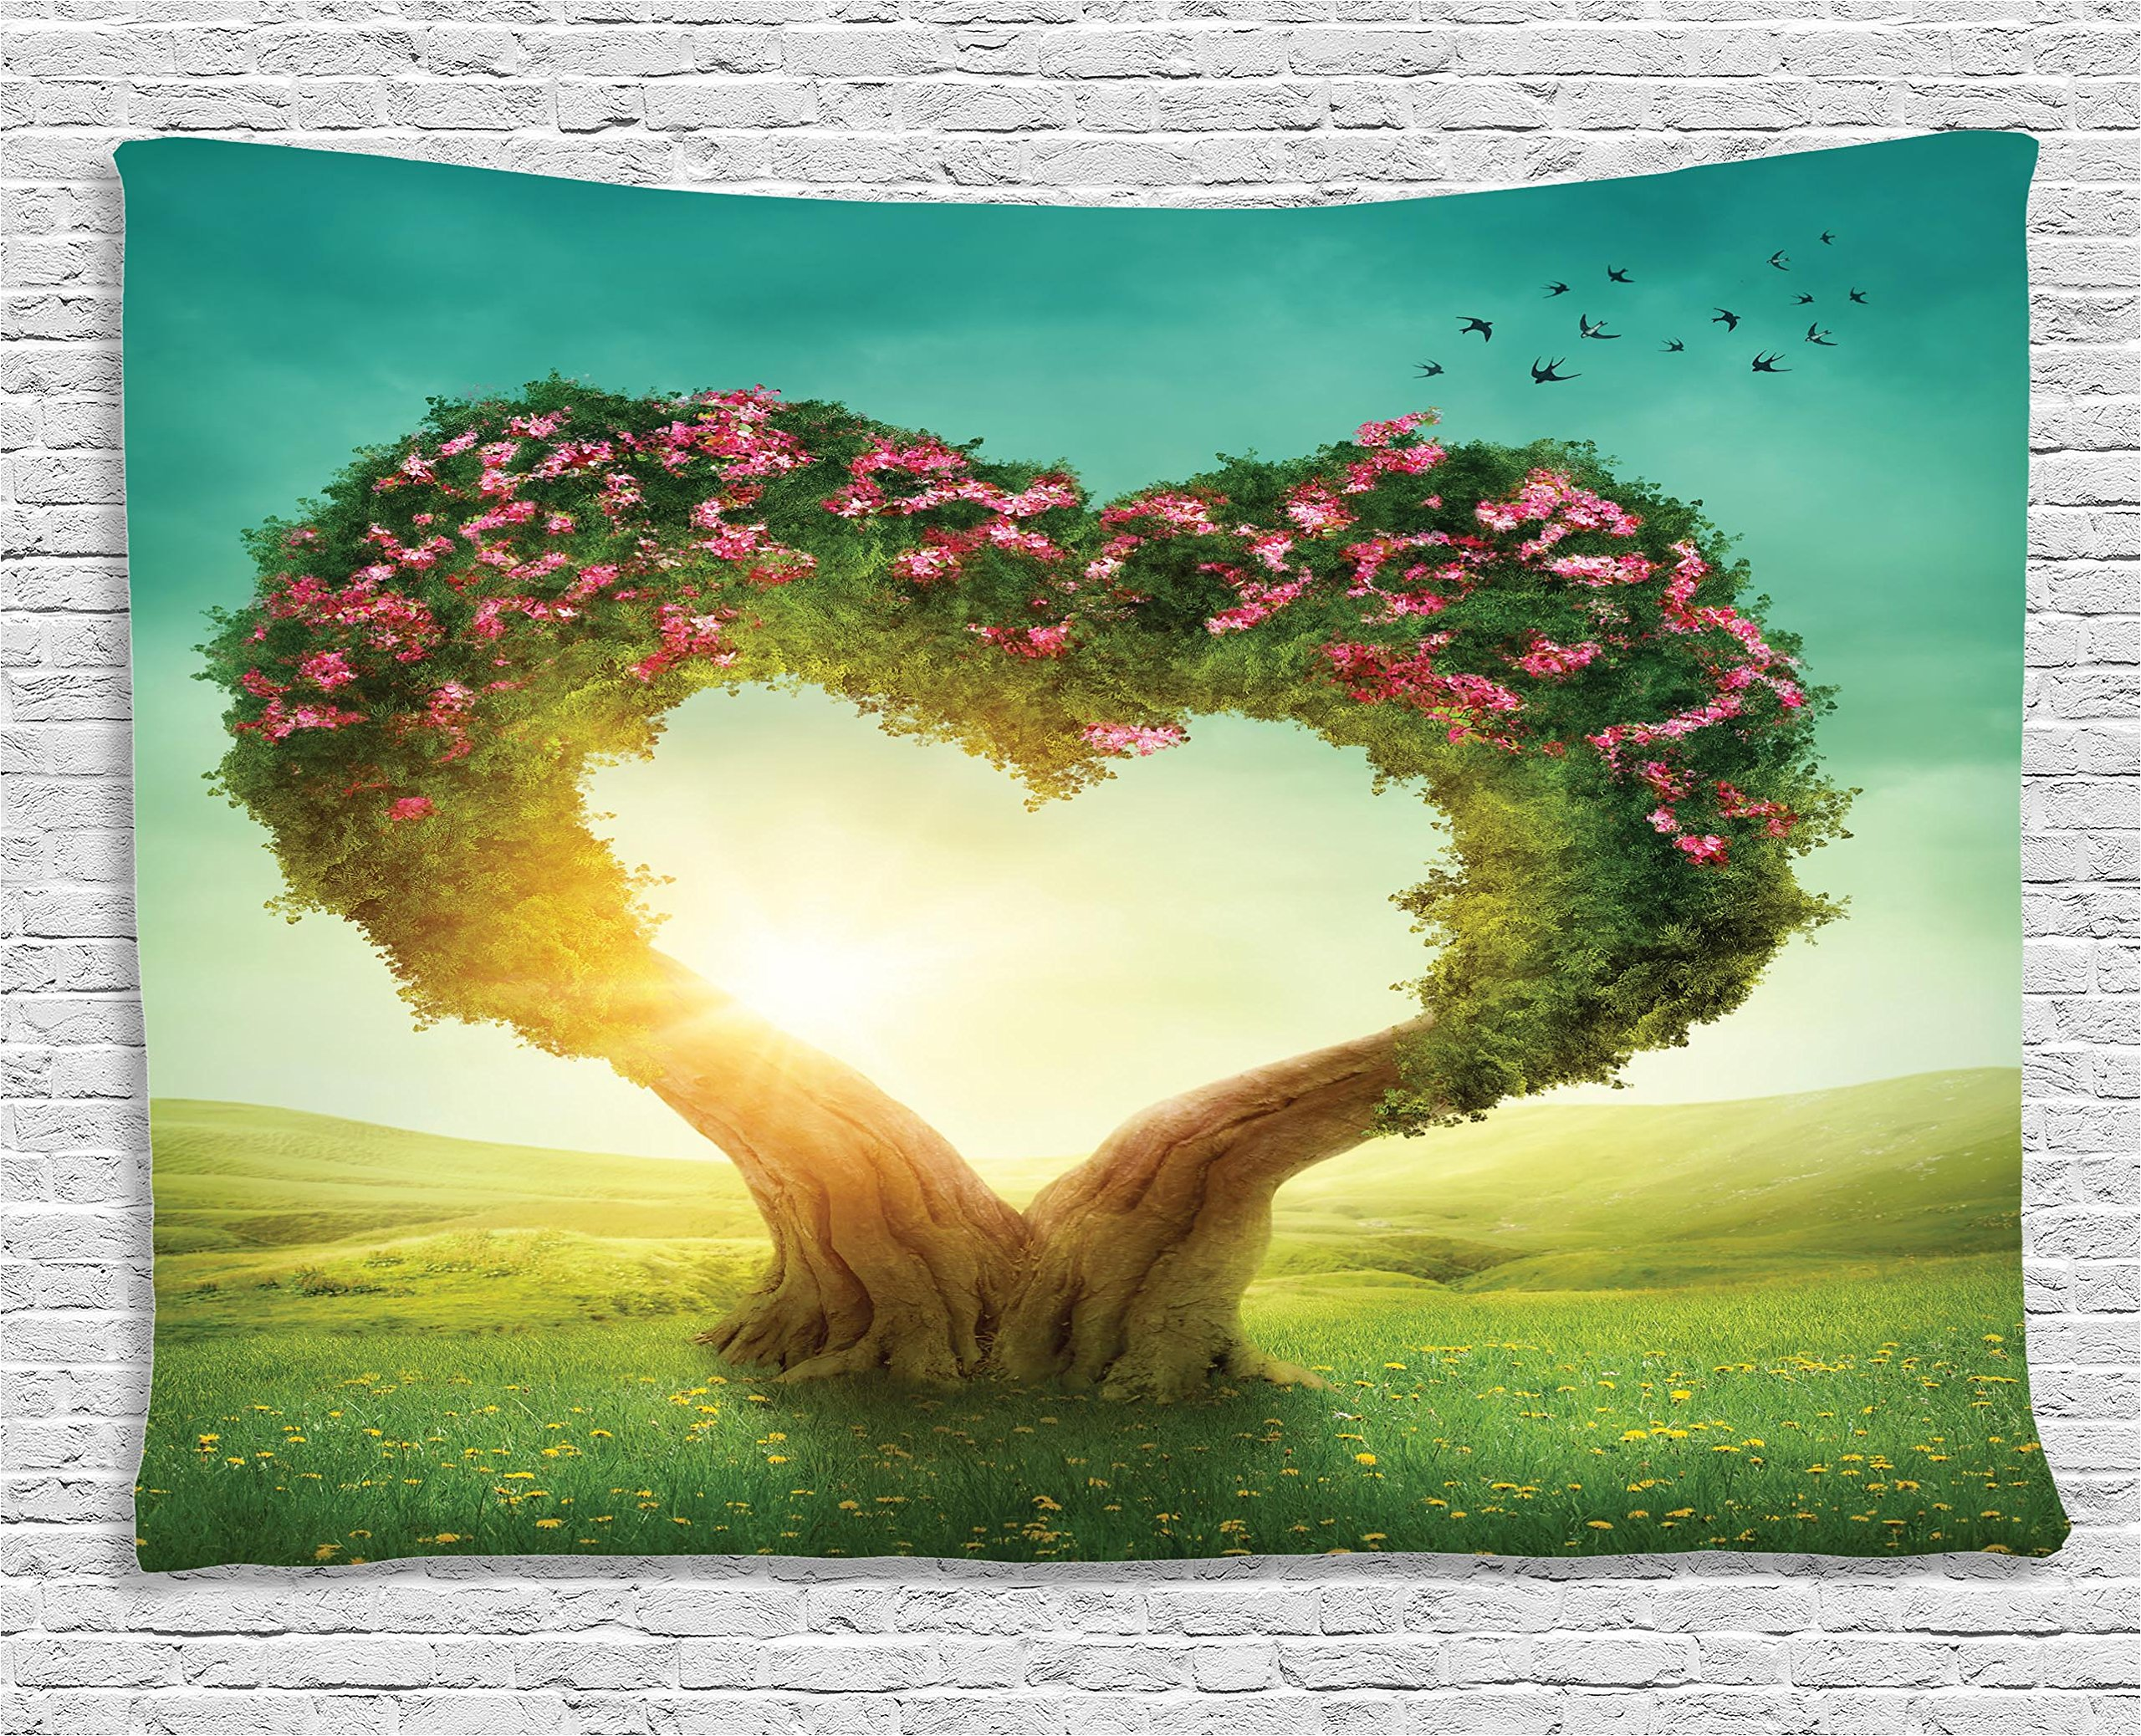 Ambesonne Love Decor Collection, Heart Shaped Tree In The Meadow Grassland Wildflowers Enchanted Fairytale, Bedroom Living Room Dorm Wall Hanging Tapestry, 80W X 60L Inch